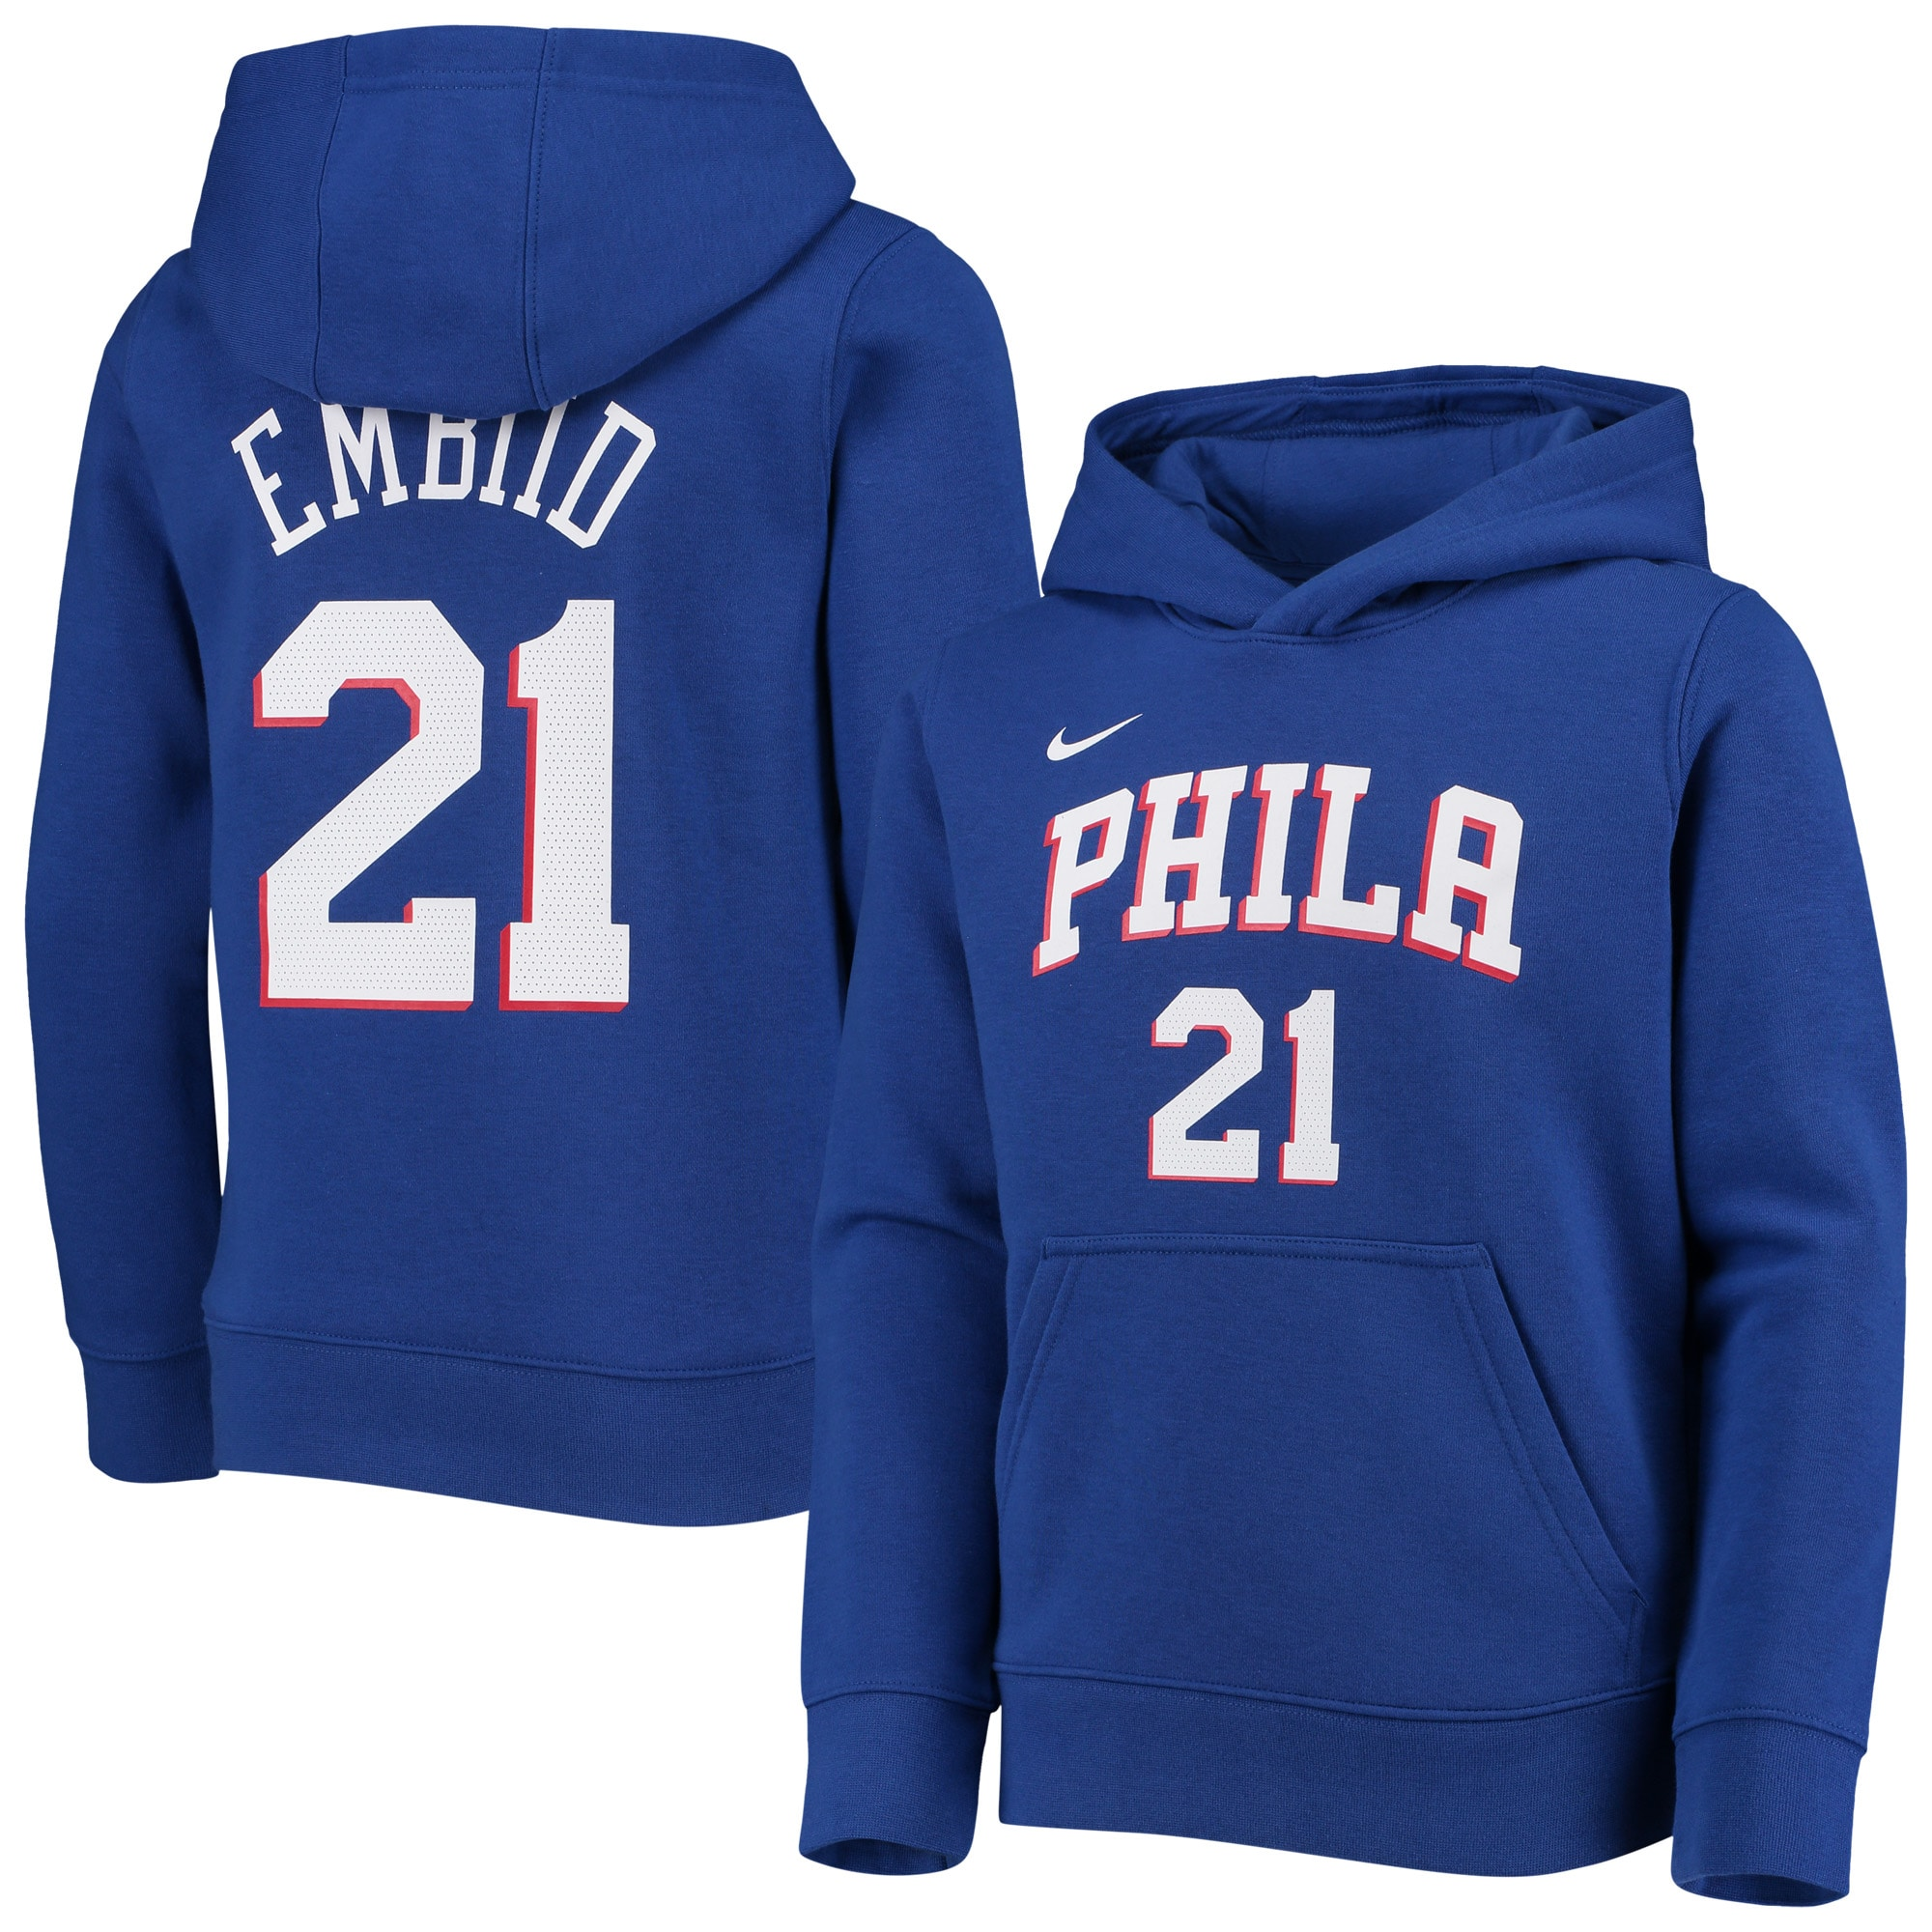 Joel Embiid Philadelphia 76ers Nike Youth Logo Name & Number Pullover Hoodie - Royal